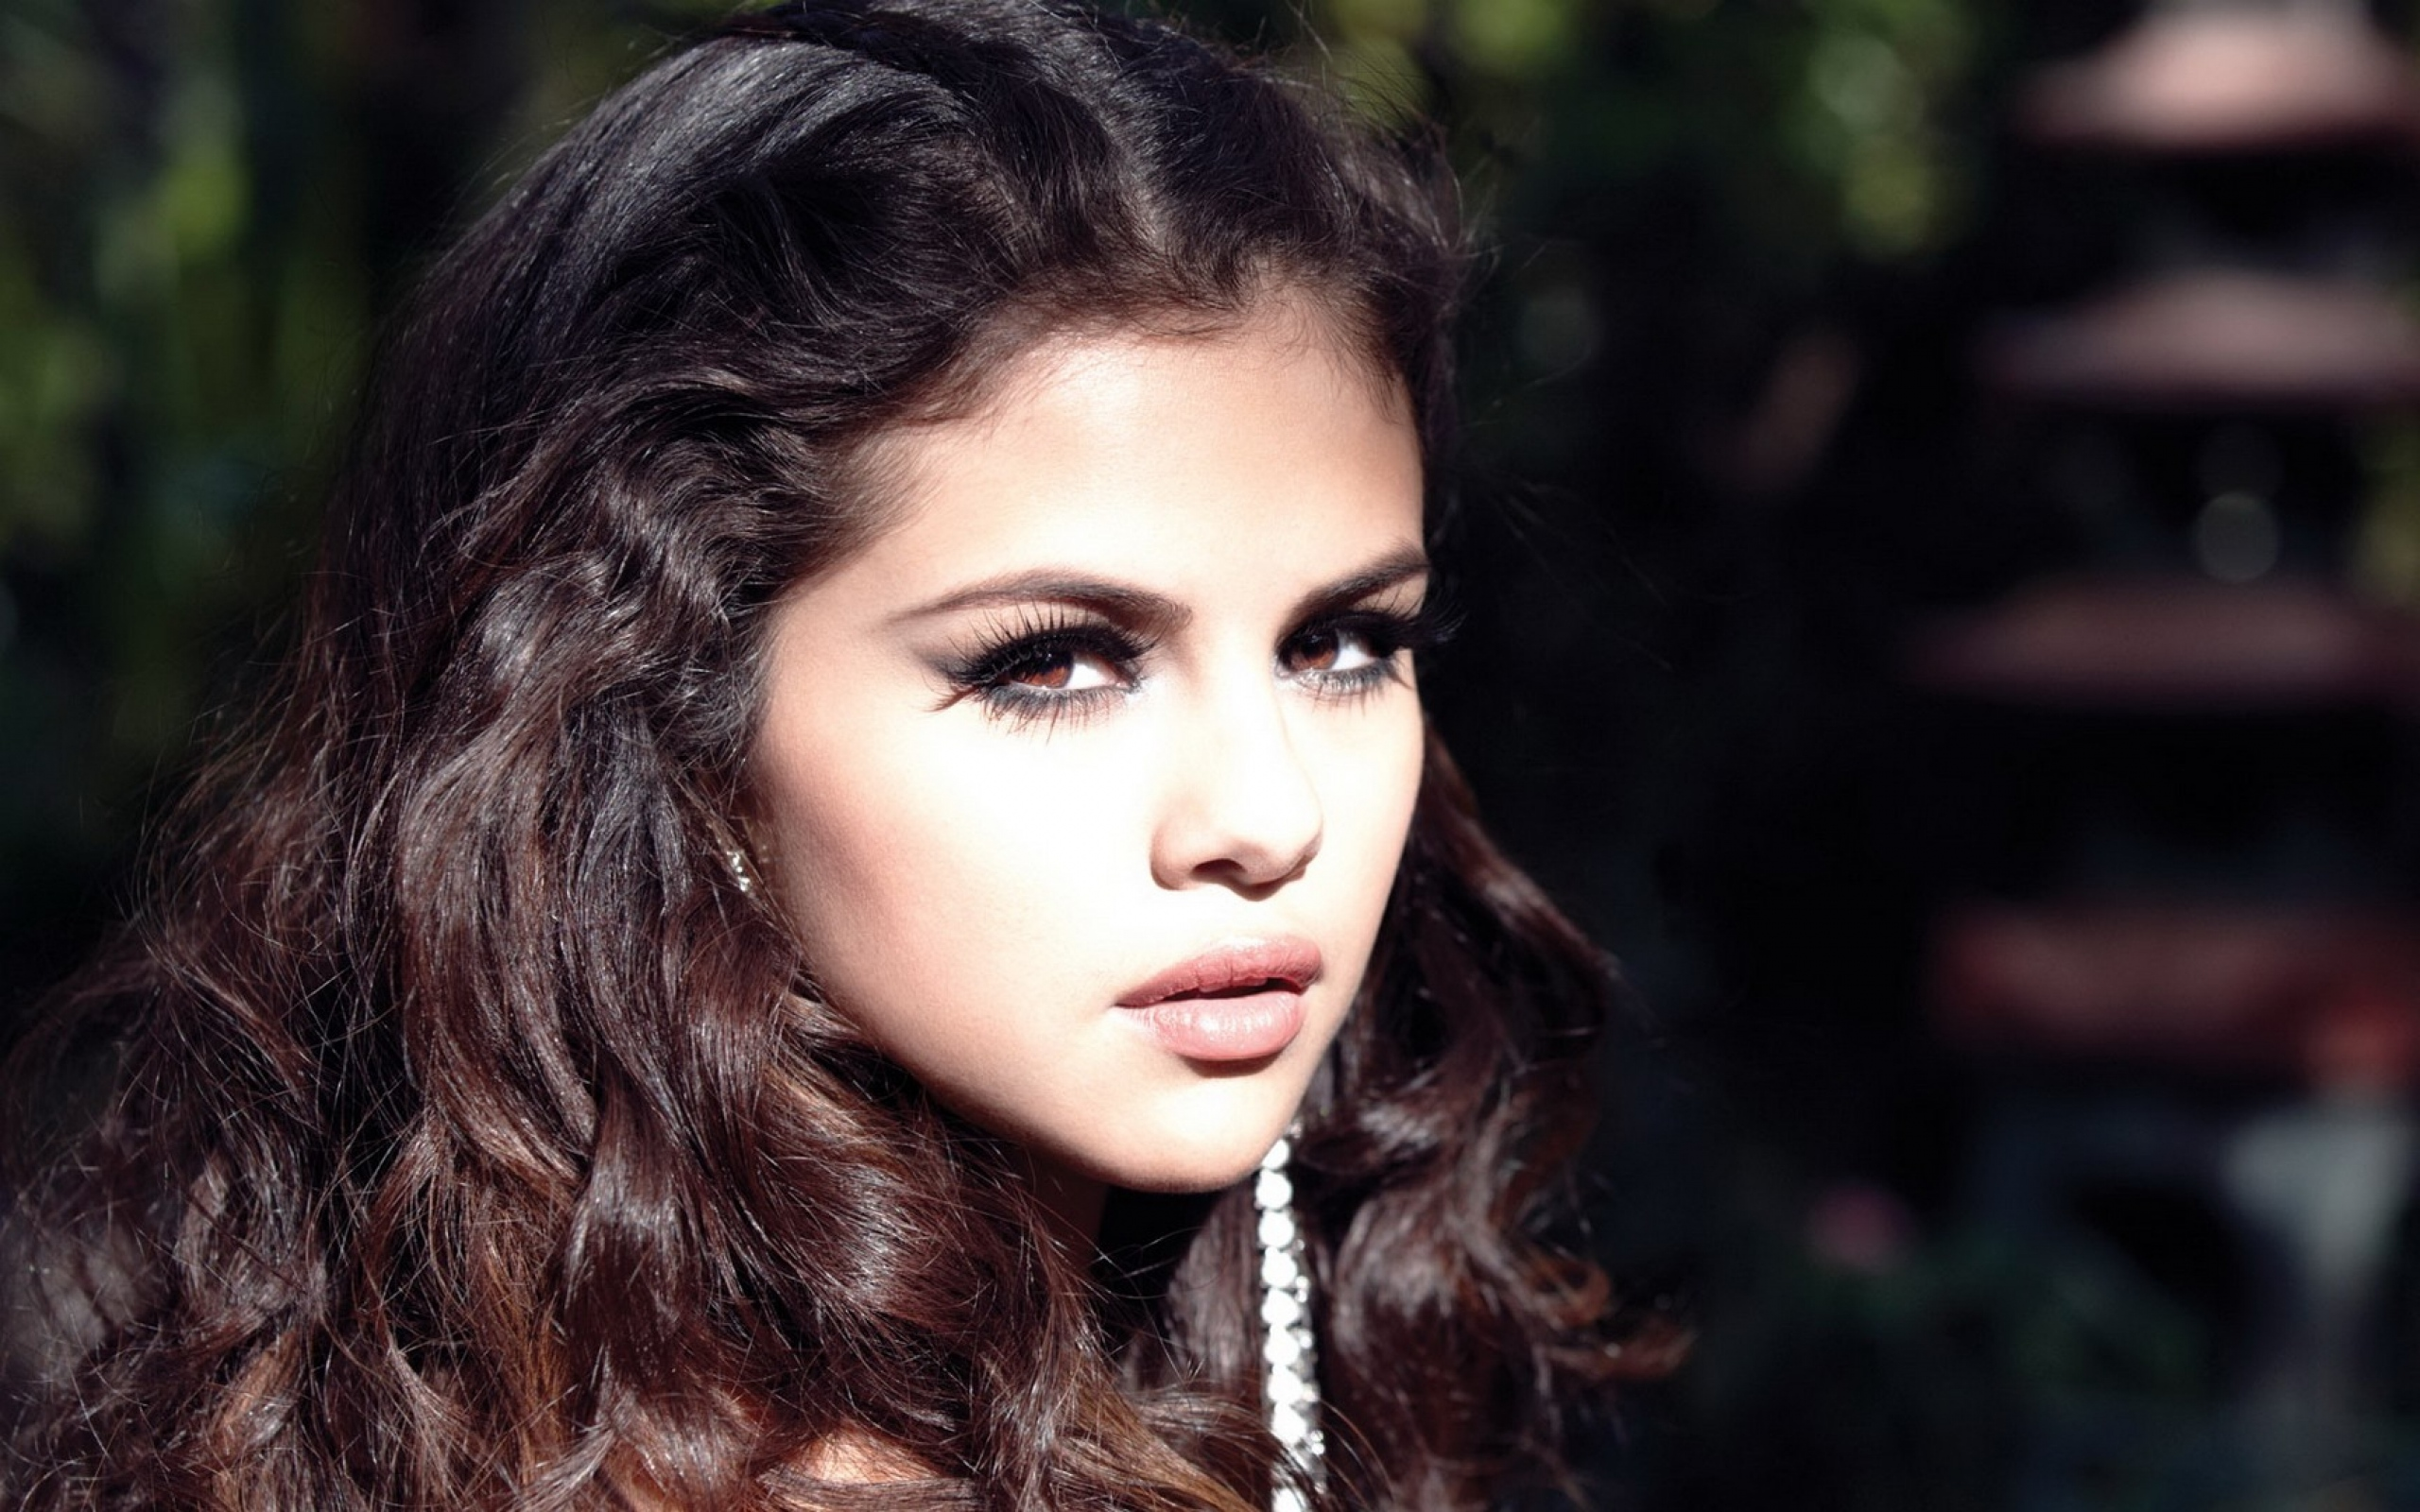 Selena Gomez Wallpapers, Pictures, Images